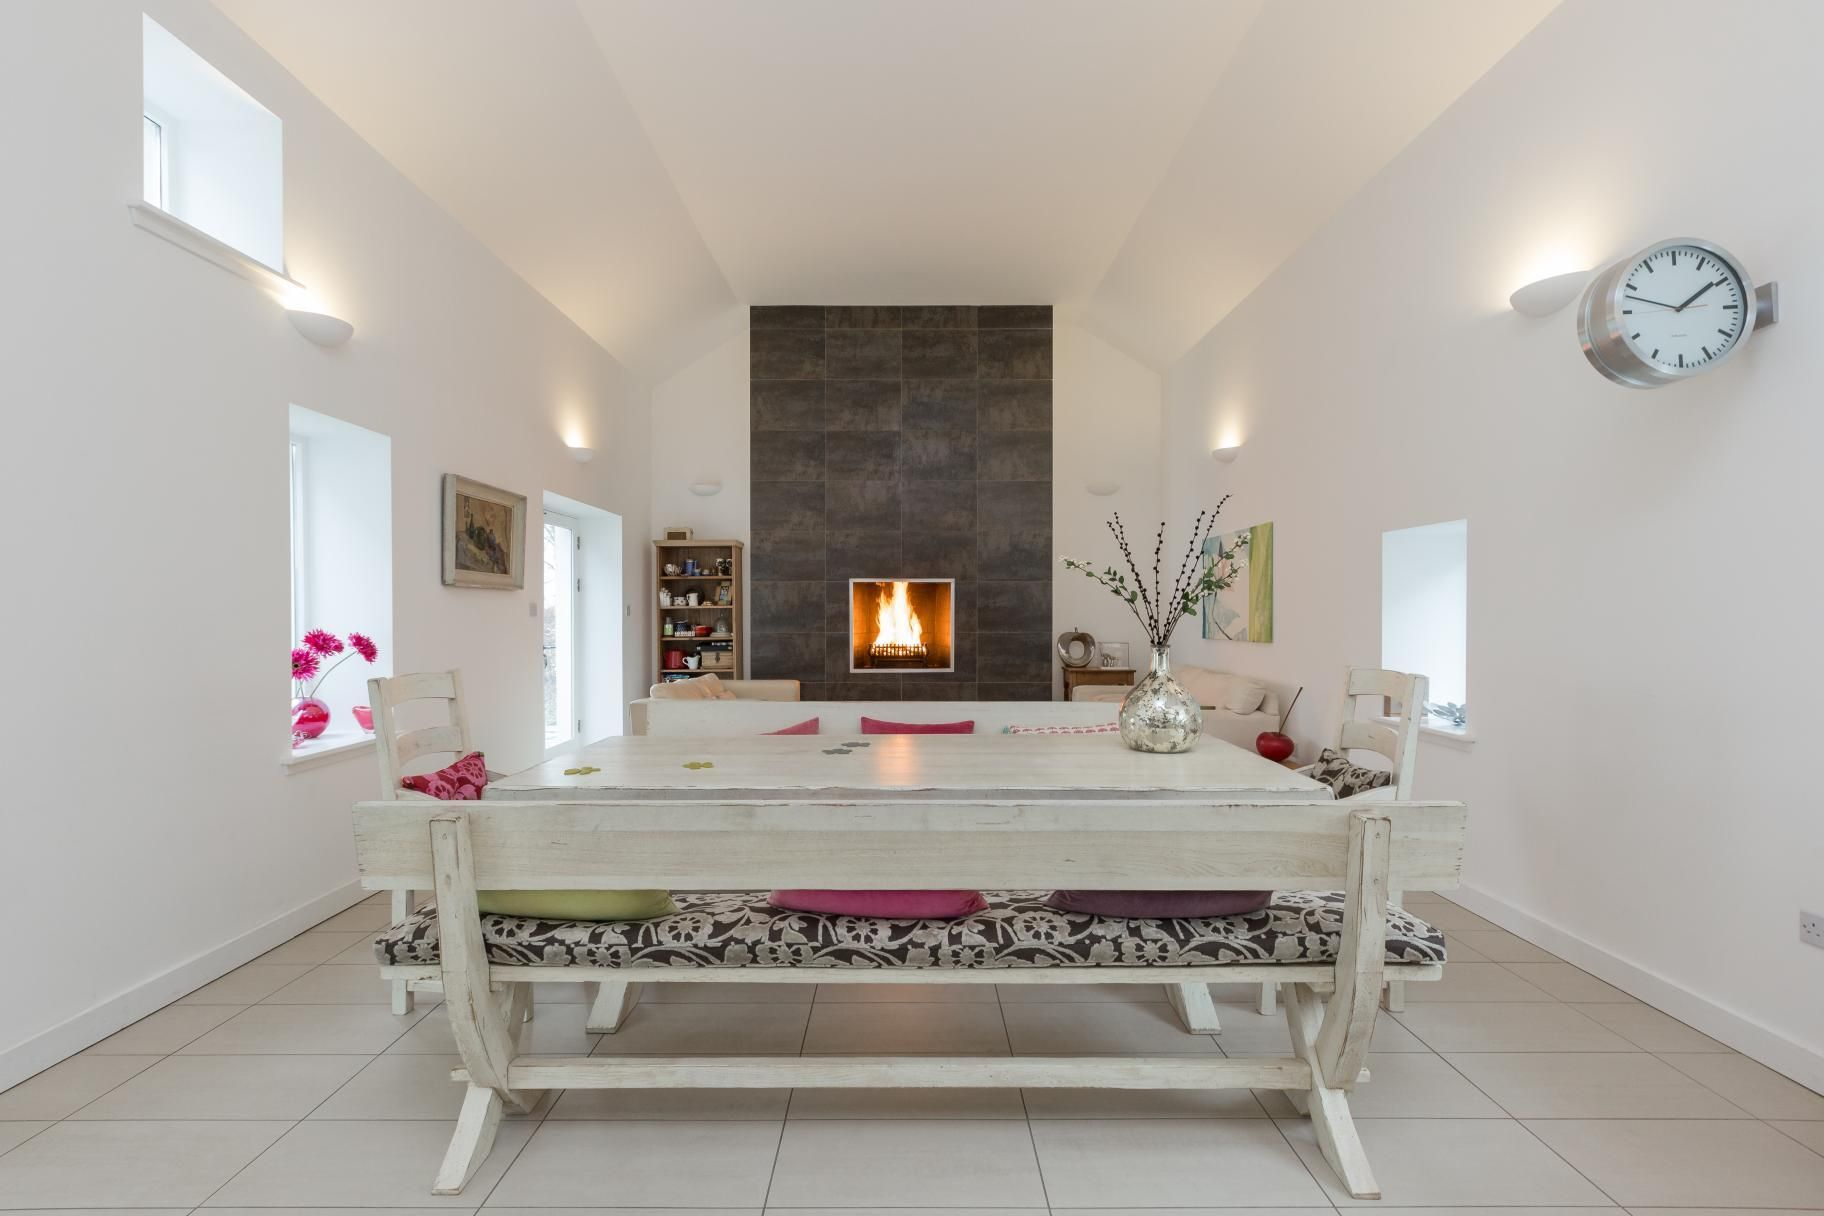 1 Rutherford Gardens, West Linton - Photo 7